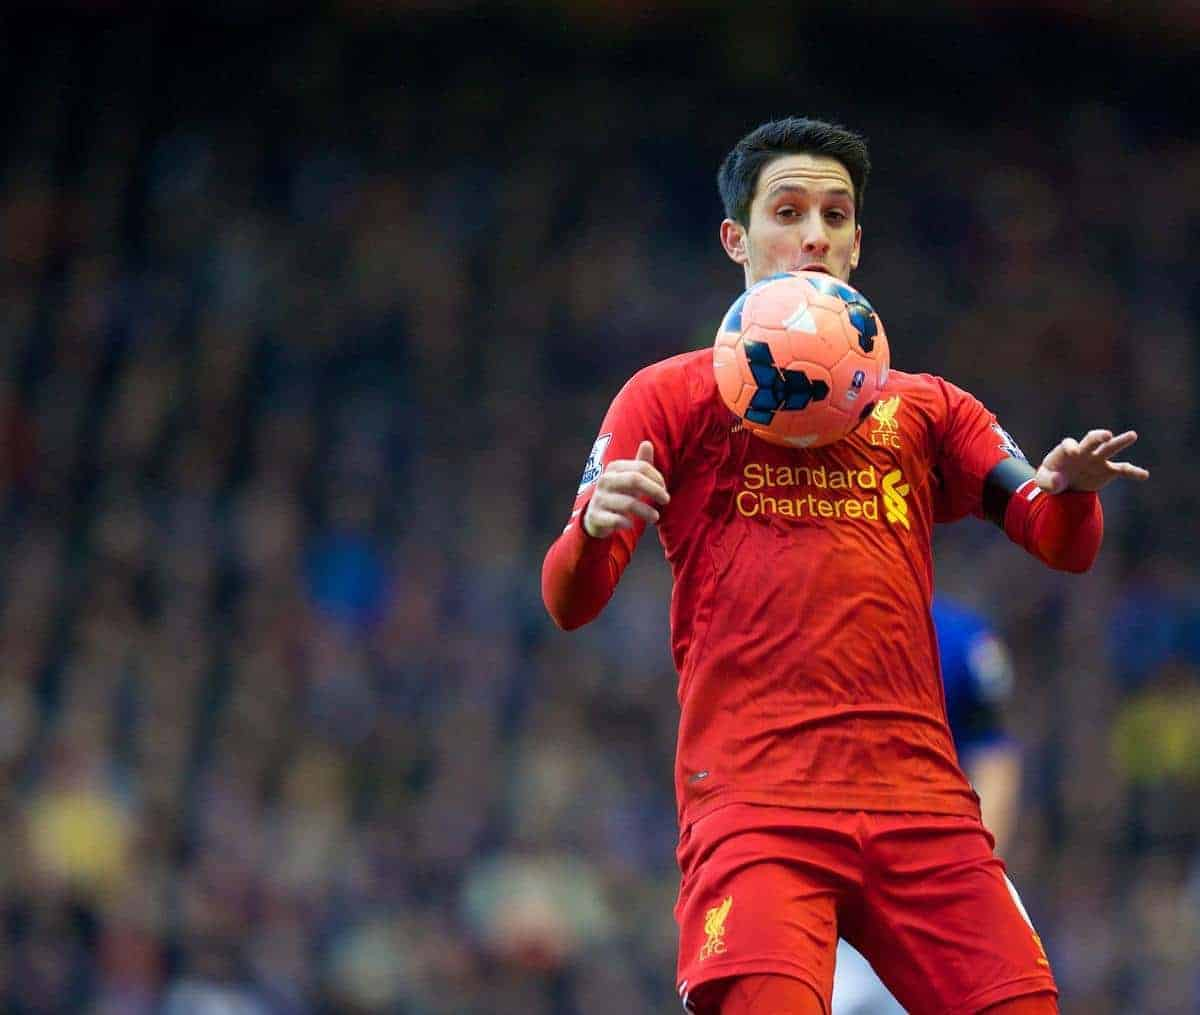 LIVERPOOL, ENGLAND - Sunday, January 5, 2014: Liverpool's Luis Alberto in action against Oldham Athletic during the FA Cup 3rd Round match at Anfield. (Pic by David Rawcliffe/Propaganda)